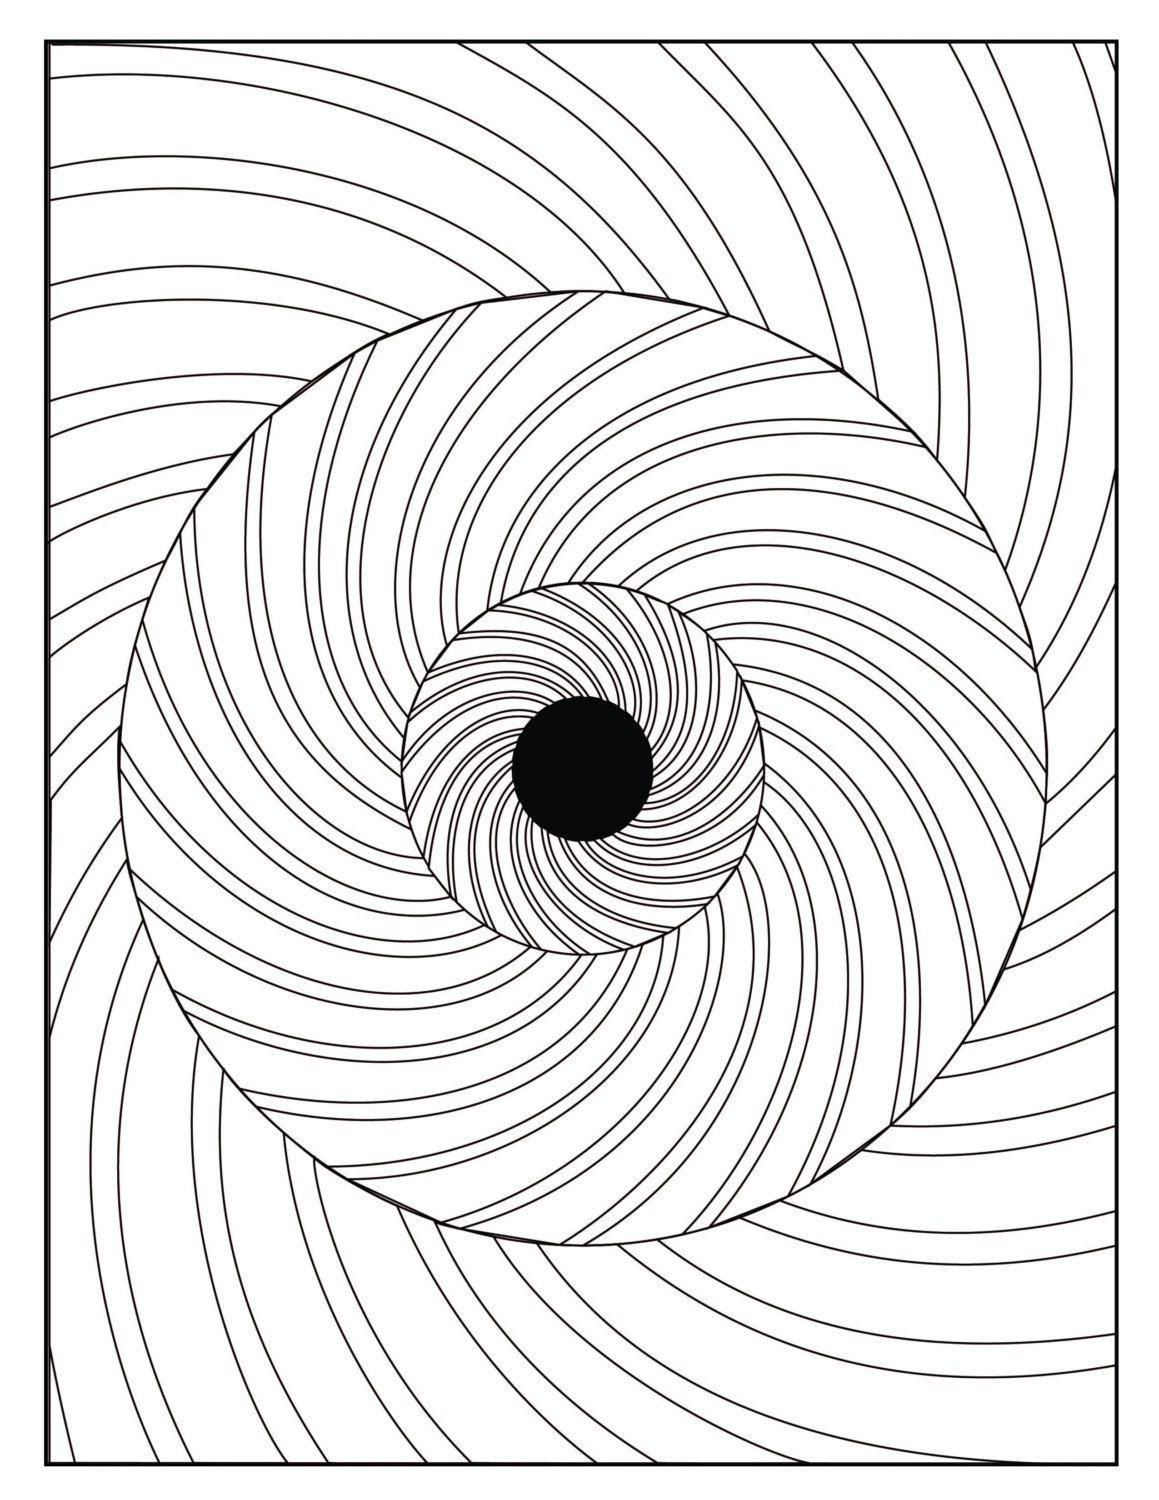 Optical Illusion Worksheets Printable Digital Optical Illusion 3 Coloring Page by